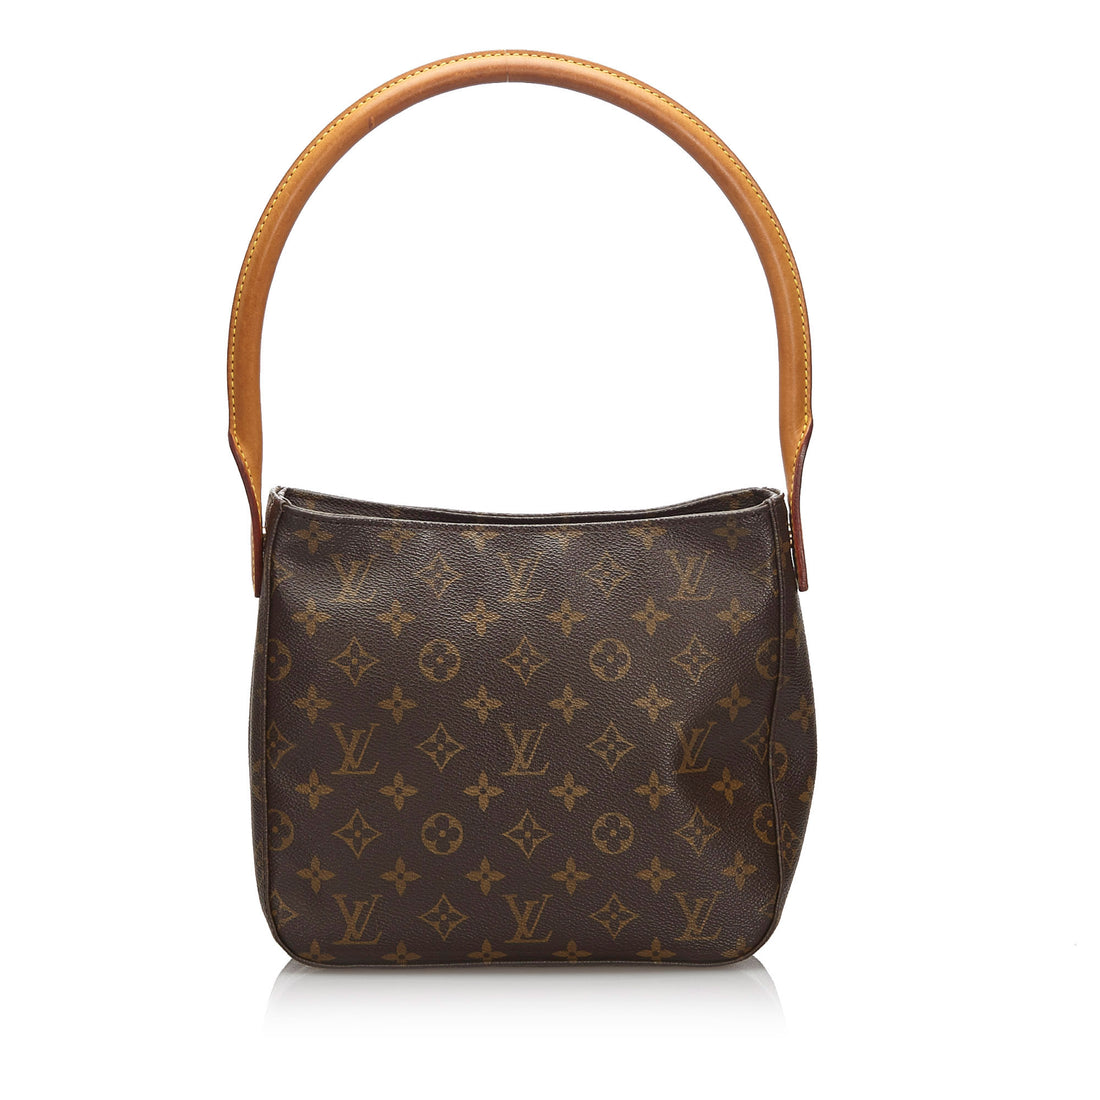 Louis Vuitton Vintage 2002 Monogram Looping MM Top Handle Bag